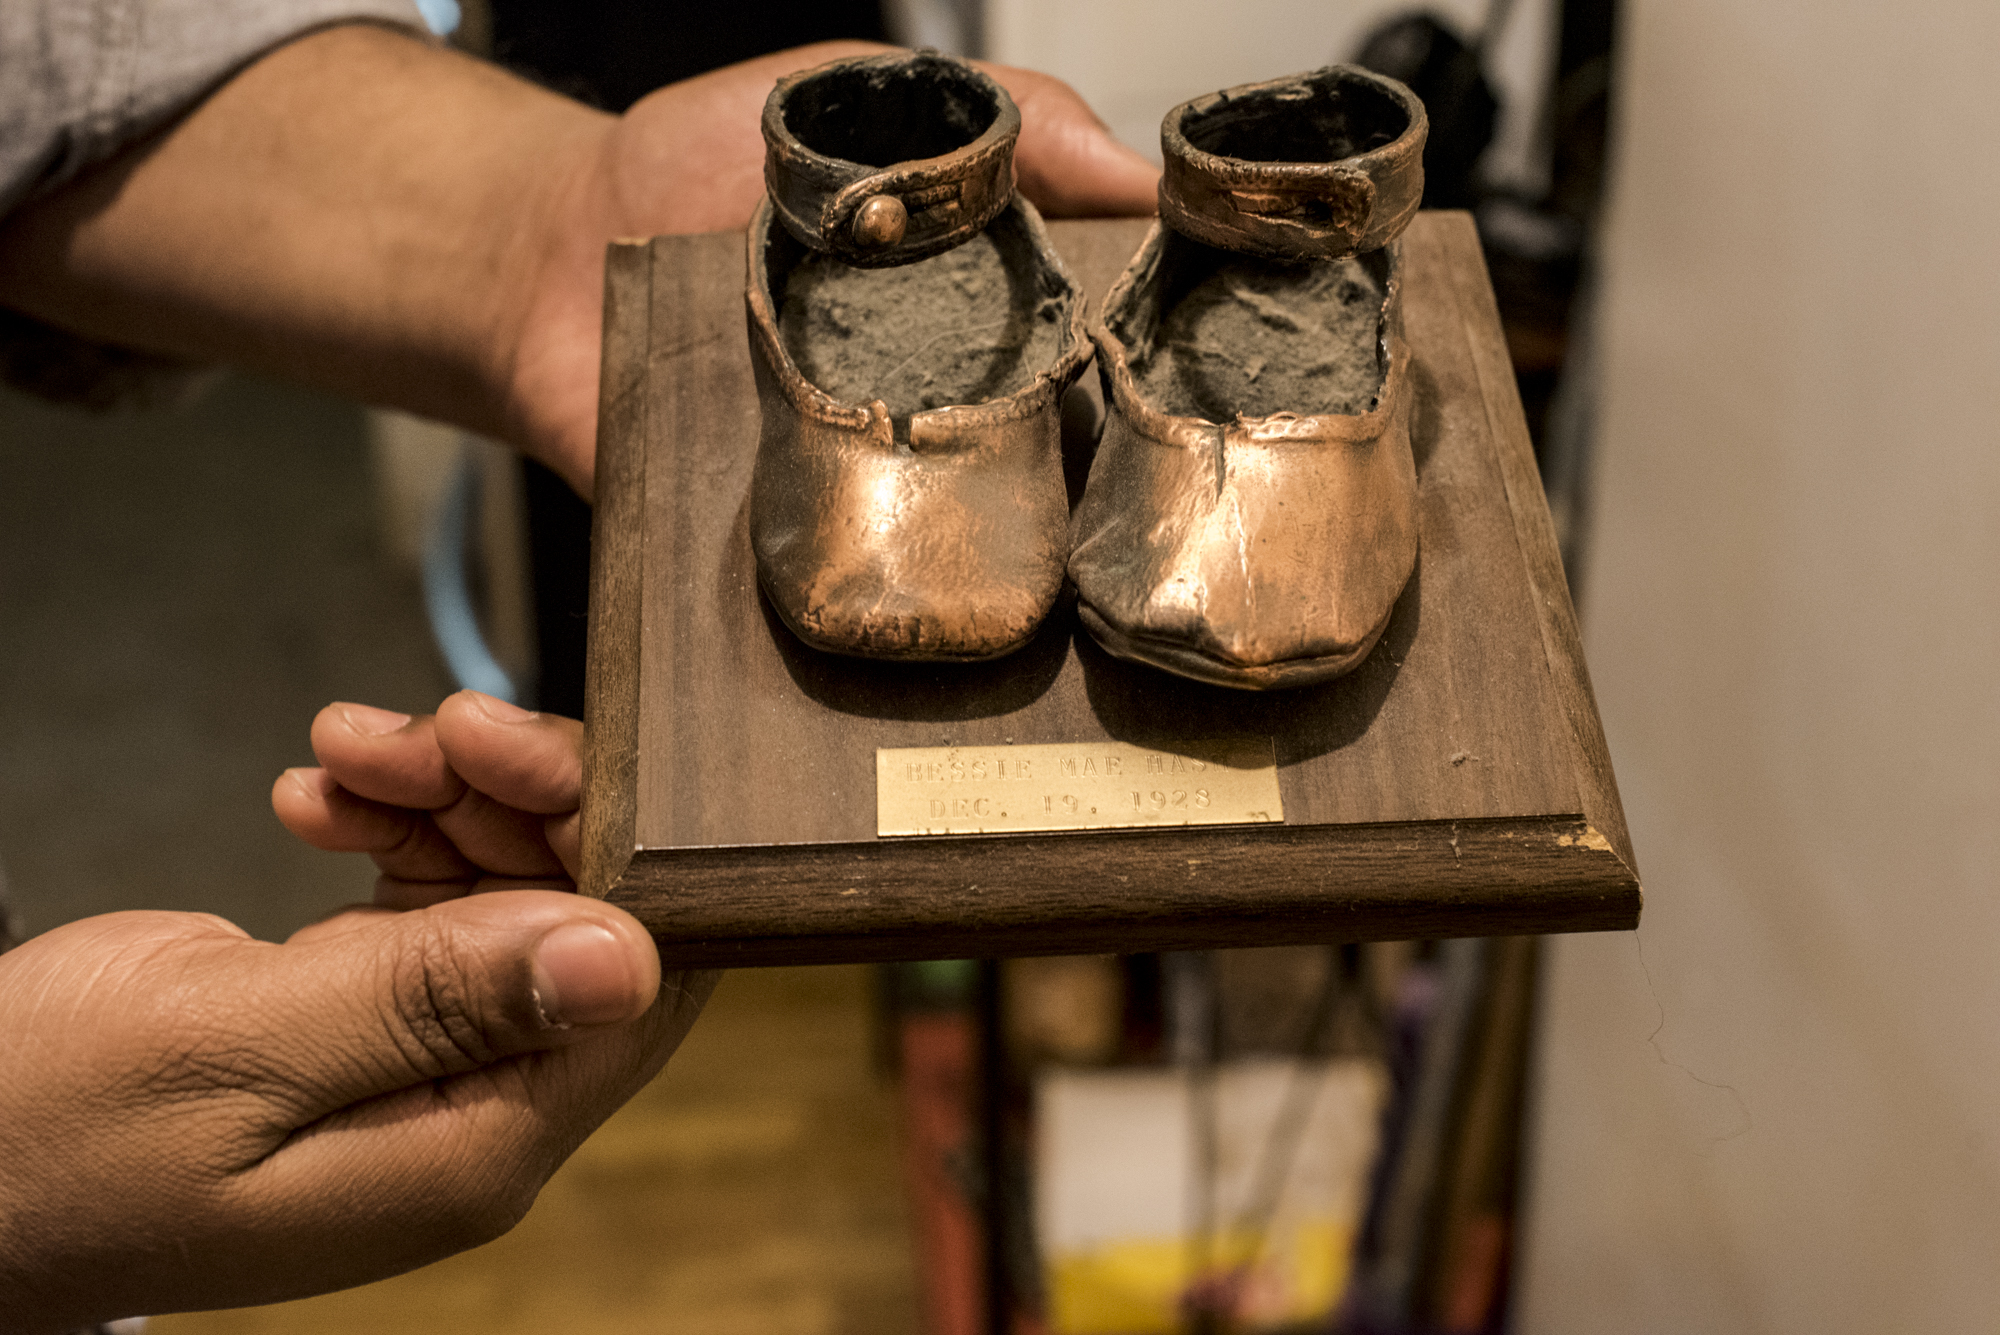 Kenneth Fontenelle holds the brass cast of his grandmother's (Bessie Fontenelle's) first shoes. (C) Harriet Dedman, 2016